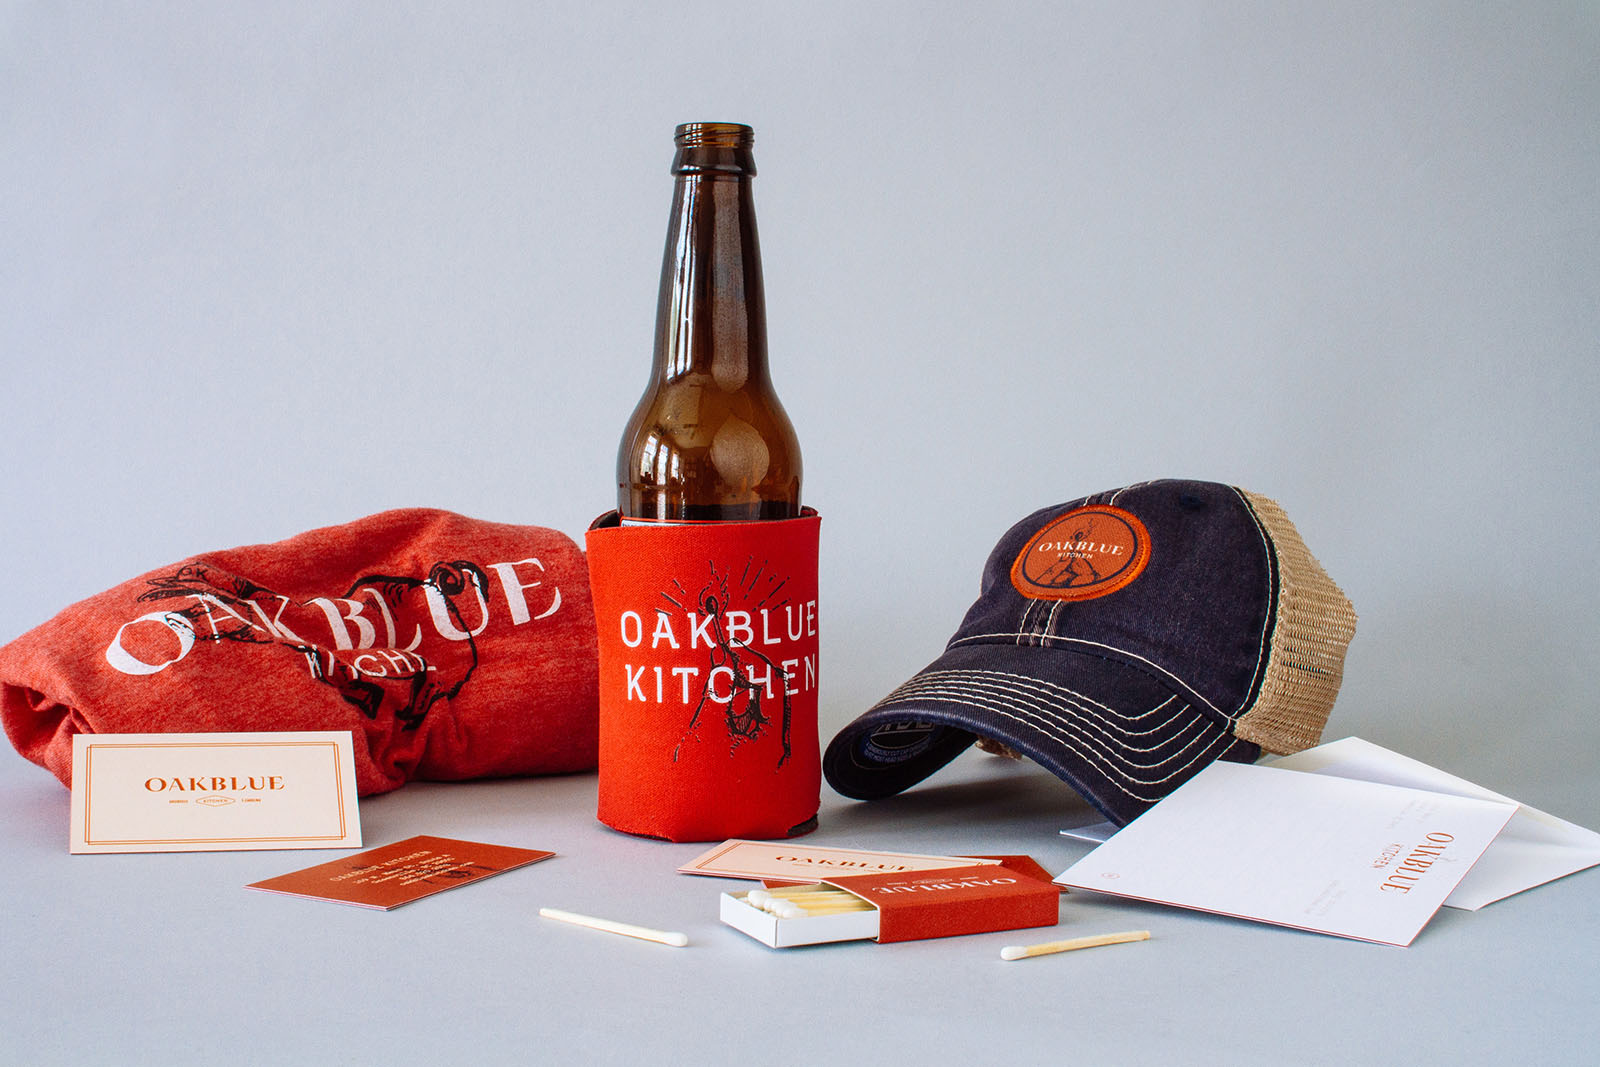 Samples of Oakblue Kitchen restaurant branding collateral design, with a red t shirt, koozie for beer, business cards, hat, matches and notecards.